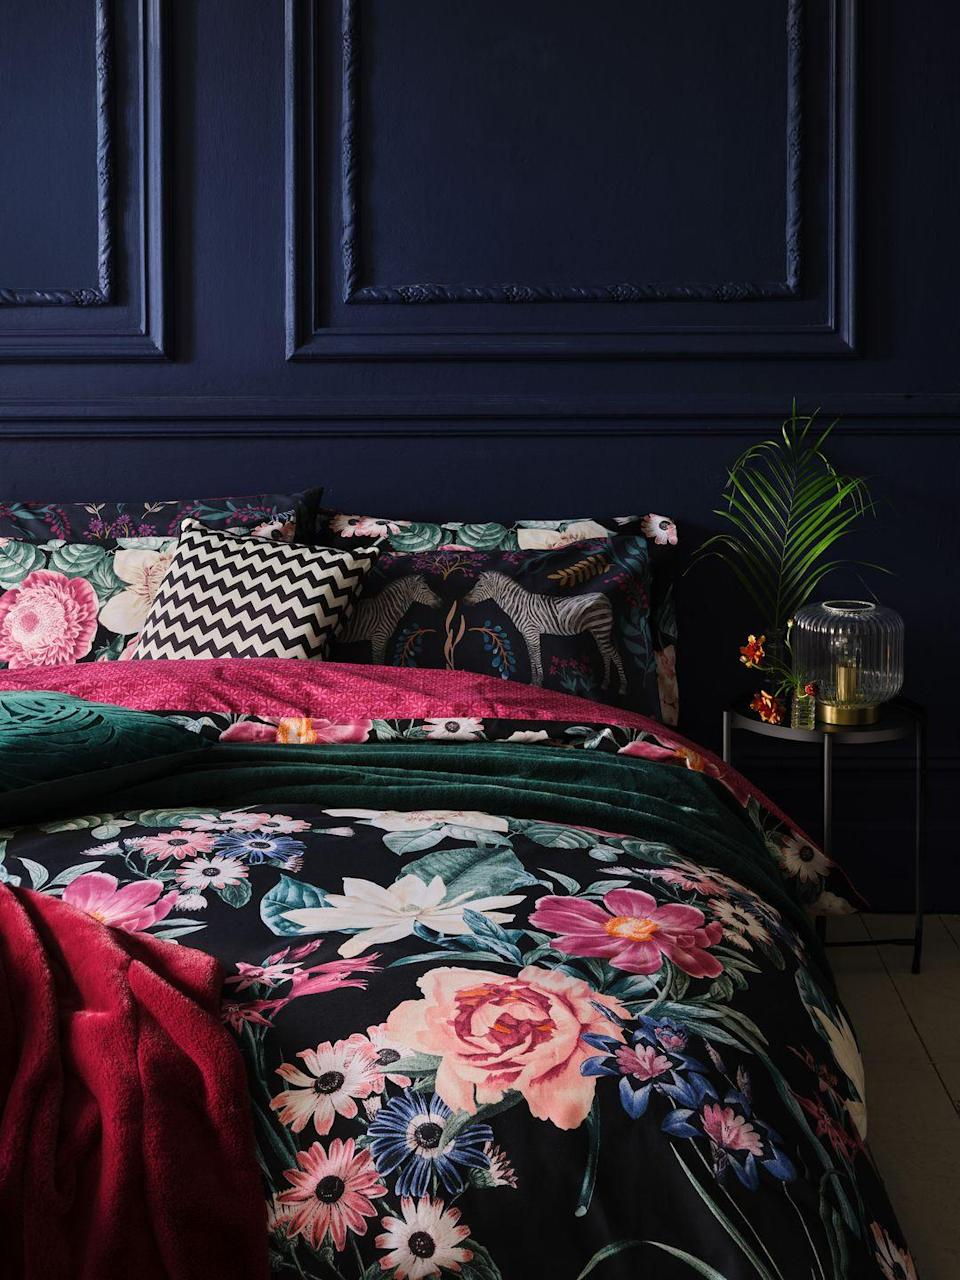 """<p>Warming up your decor doesn't have to be a big paint job. Perfect for cold winter nights, The Entertainer trend is all about moody hues, cosy throws and statement-making floral bedlinen at purse-friendly prices. </p><p><a class=""""link rapid-noclick-resp"""" href=""""https://direct.asda.com/george/home/D26,default,sc.html"""" rel=""""nofollow noopener"""" target=""""_blank"""" data-ylk=""""slk:SHOP NOW"""">SHOP NOW</a></p>"""